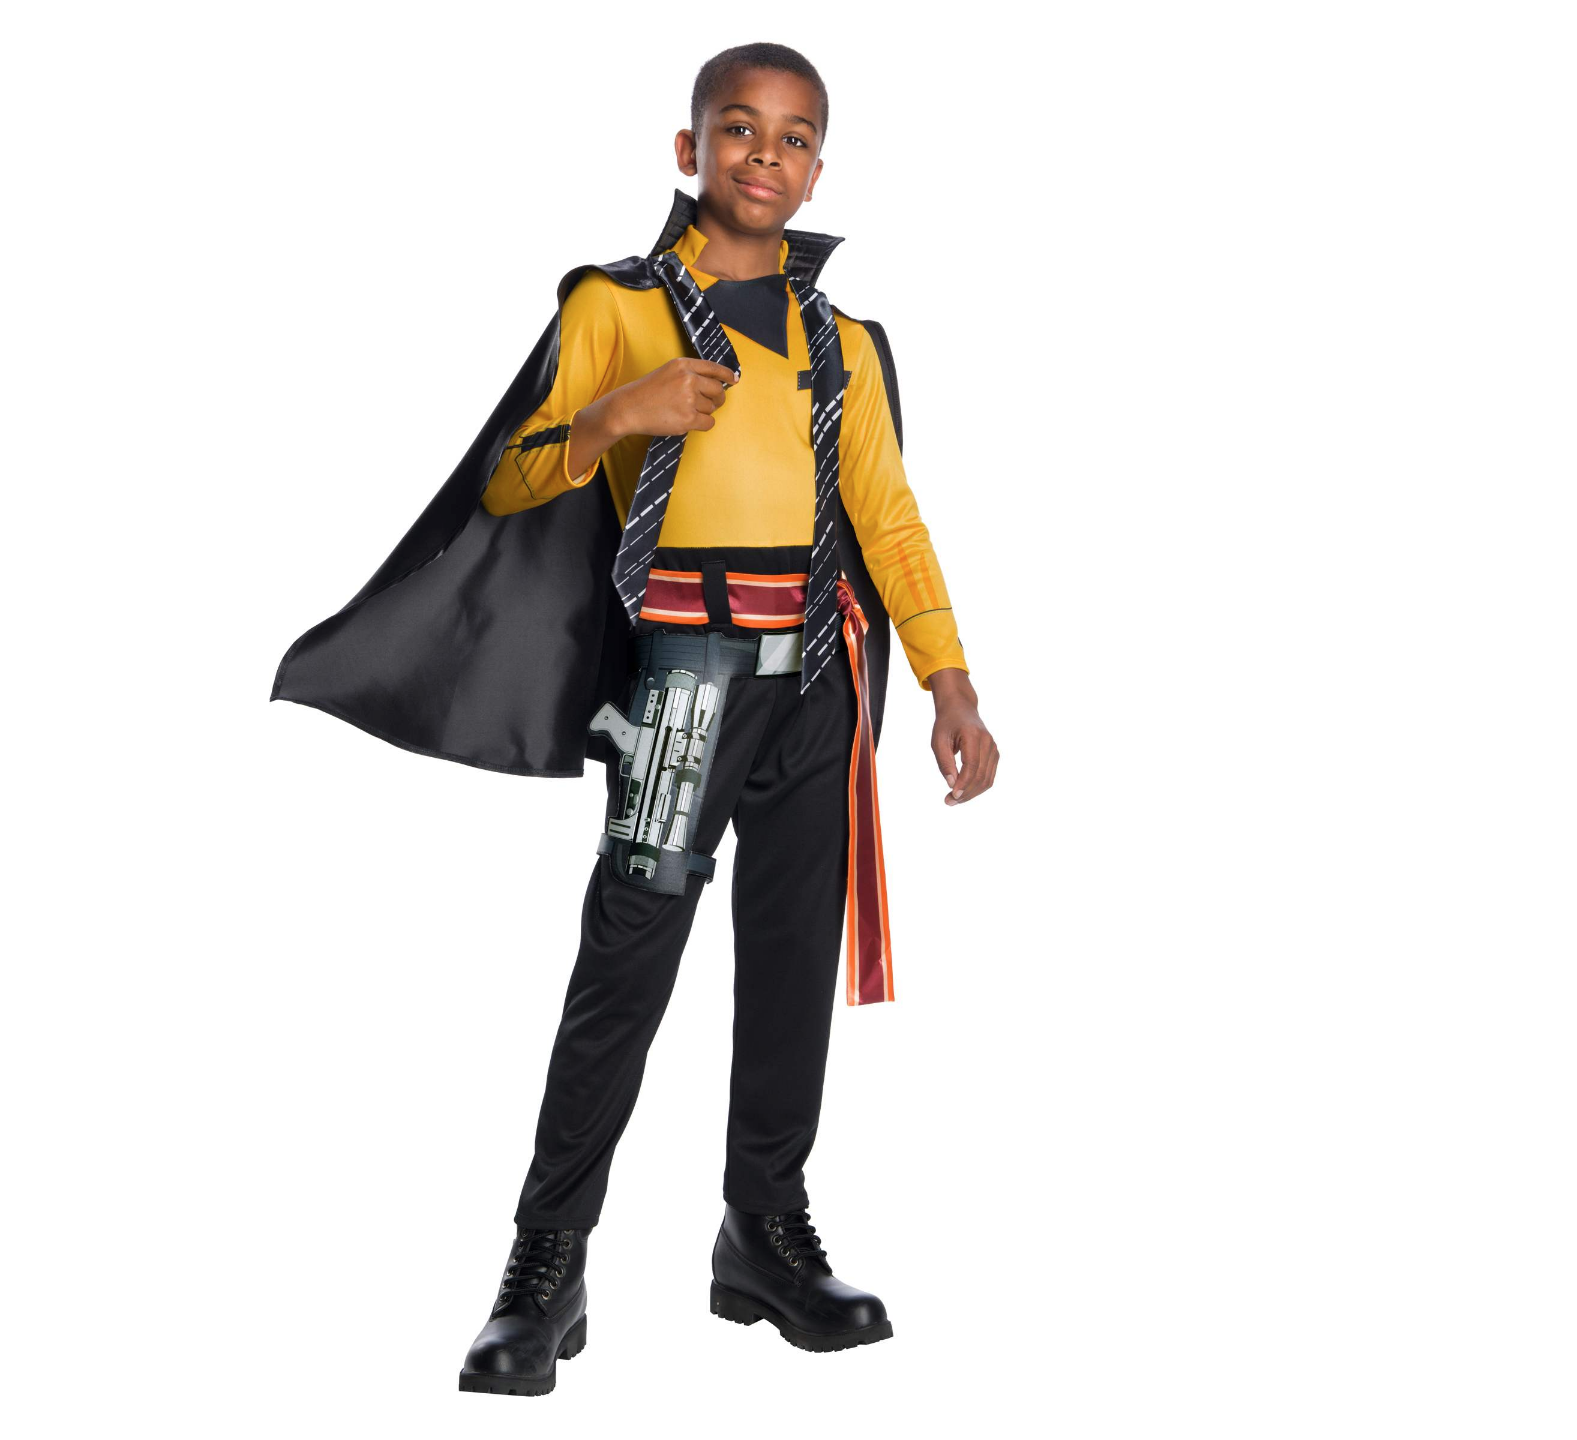 678b23663c9 20+ DIY Star Wars Costumes - How to Make Star Wars Halloween Costumes for  Kids and Adults